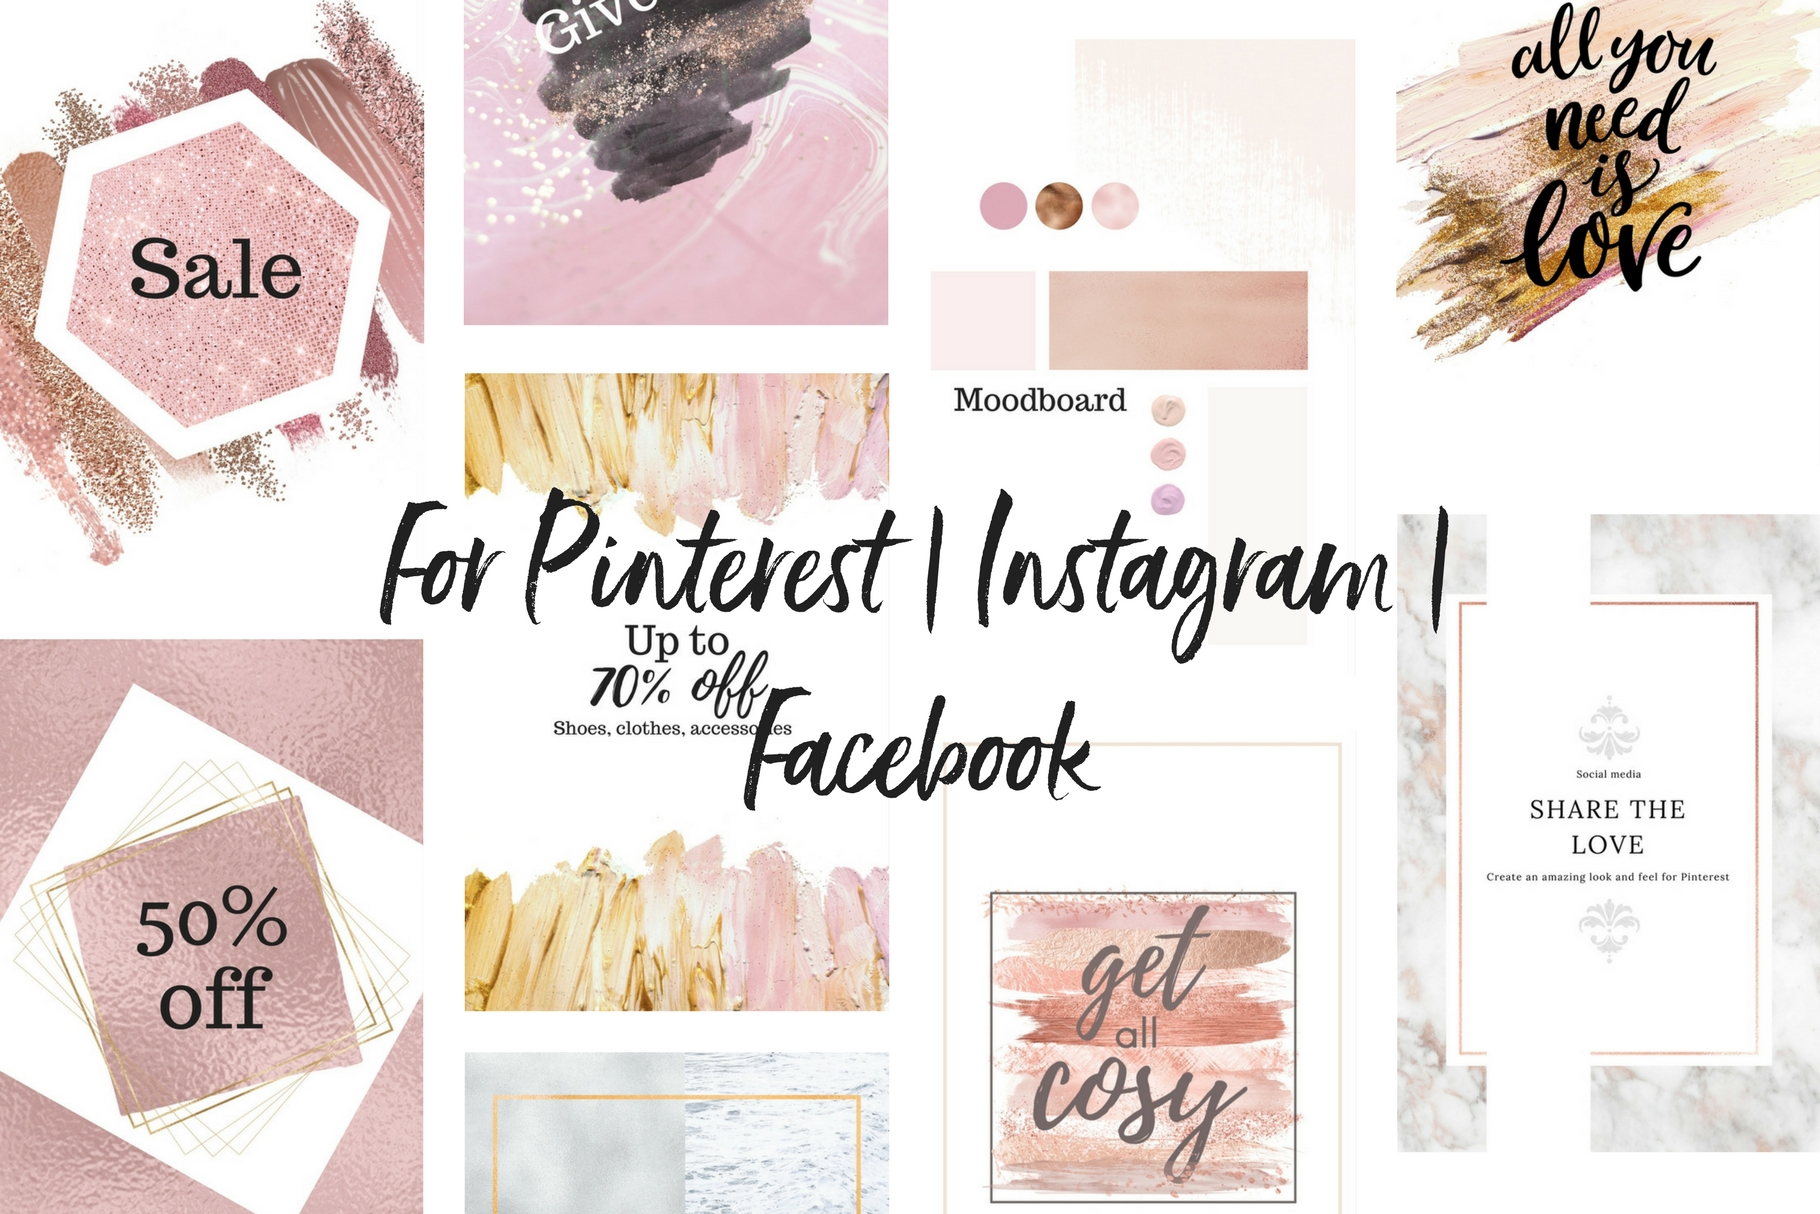 Canva for you - Social media example image 13